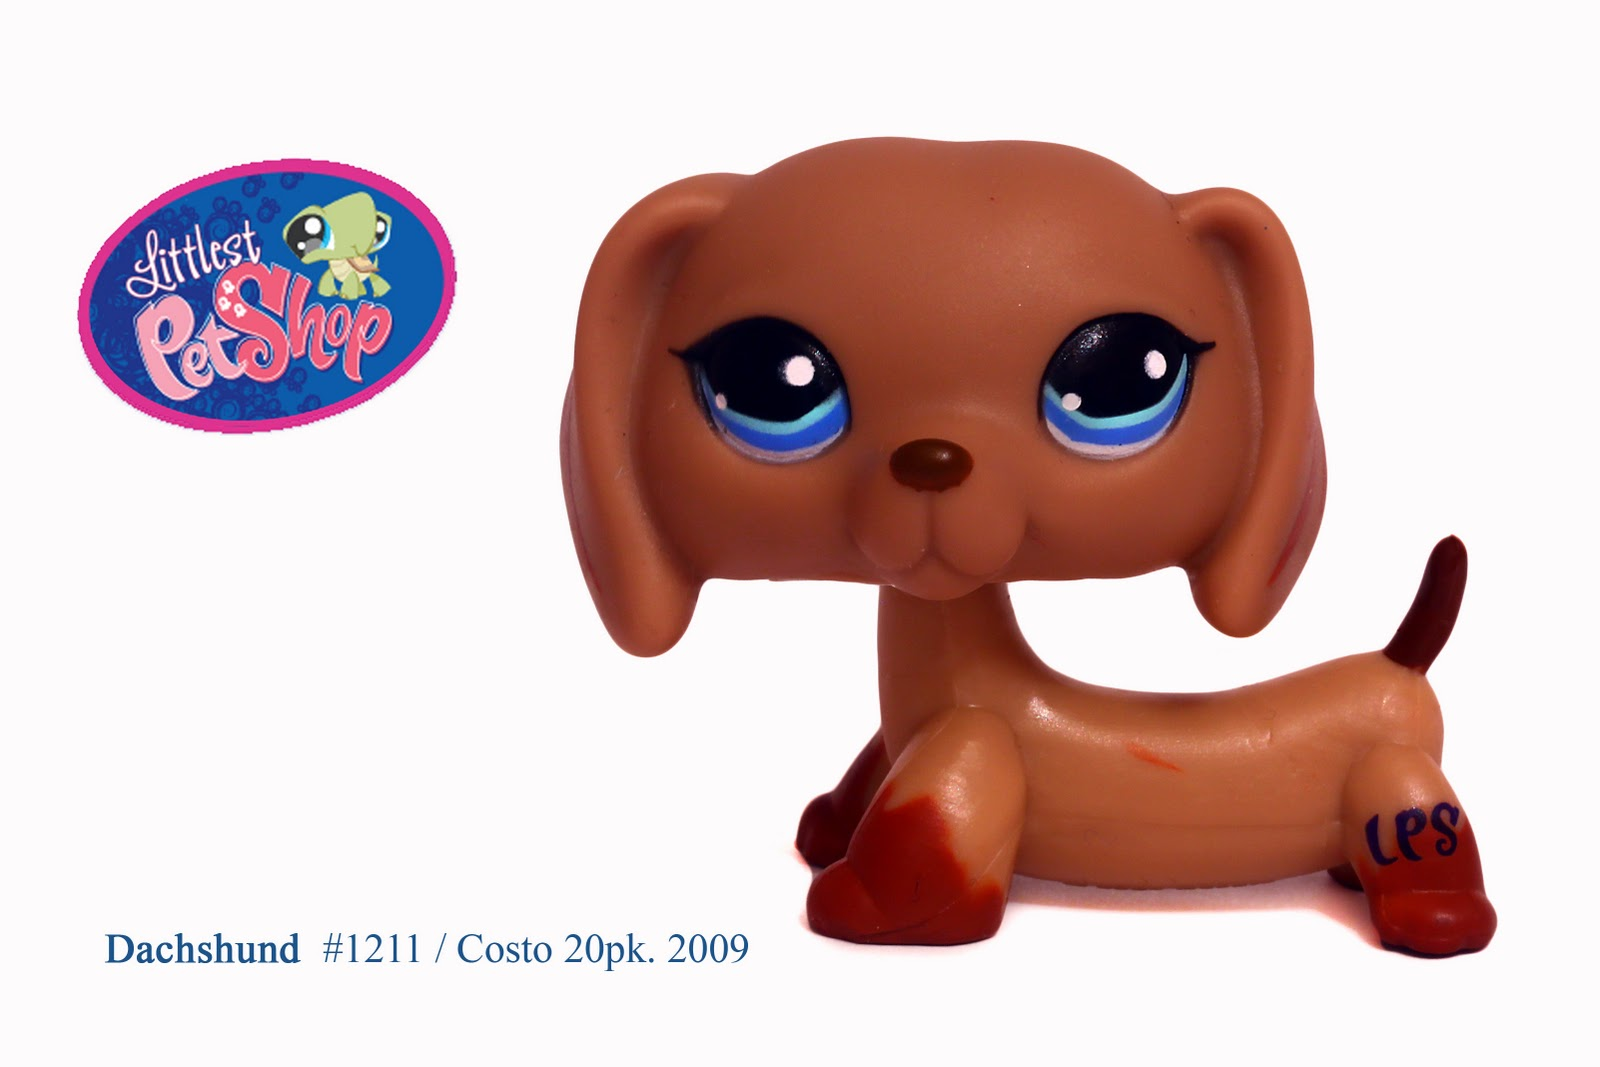 Image Littlest Pet Shop 1211 Jpg Littlest Pet Shop